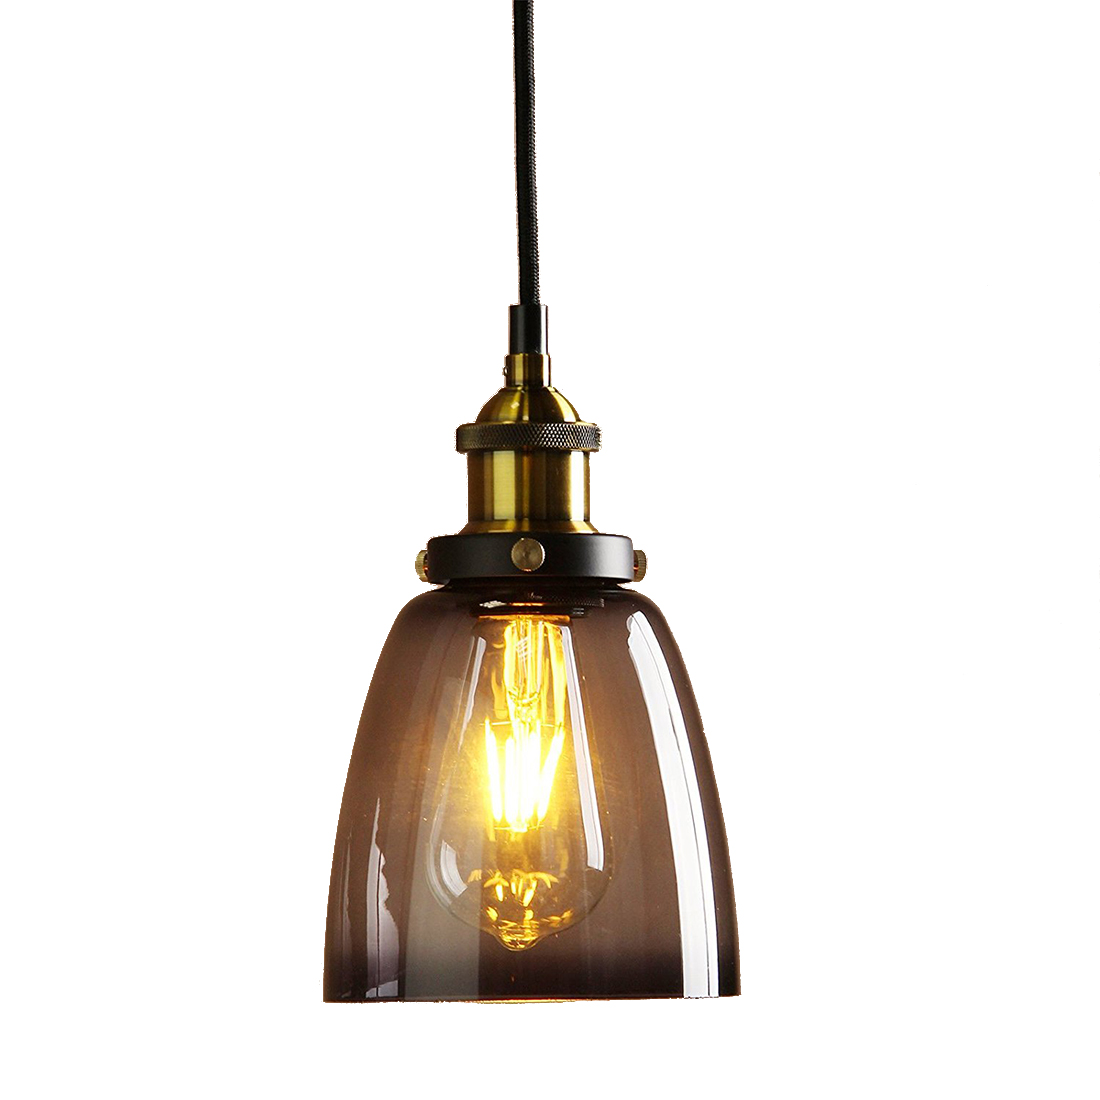 BIFI-Vintage Industrial Metal Finish Black Gray Glass Shade Retro Ceiling Light Vintage Hanging Light fitting (diameter 14cm g css vintage industrial metal finish black gray glass shade loft lamp retro ceiling light vintage light fitting diamet